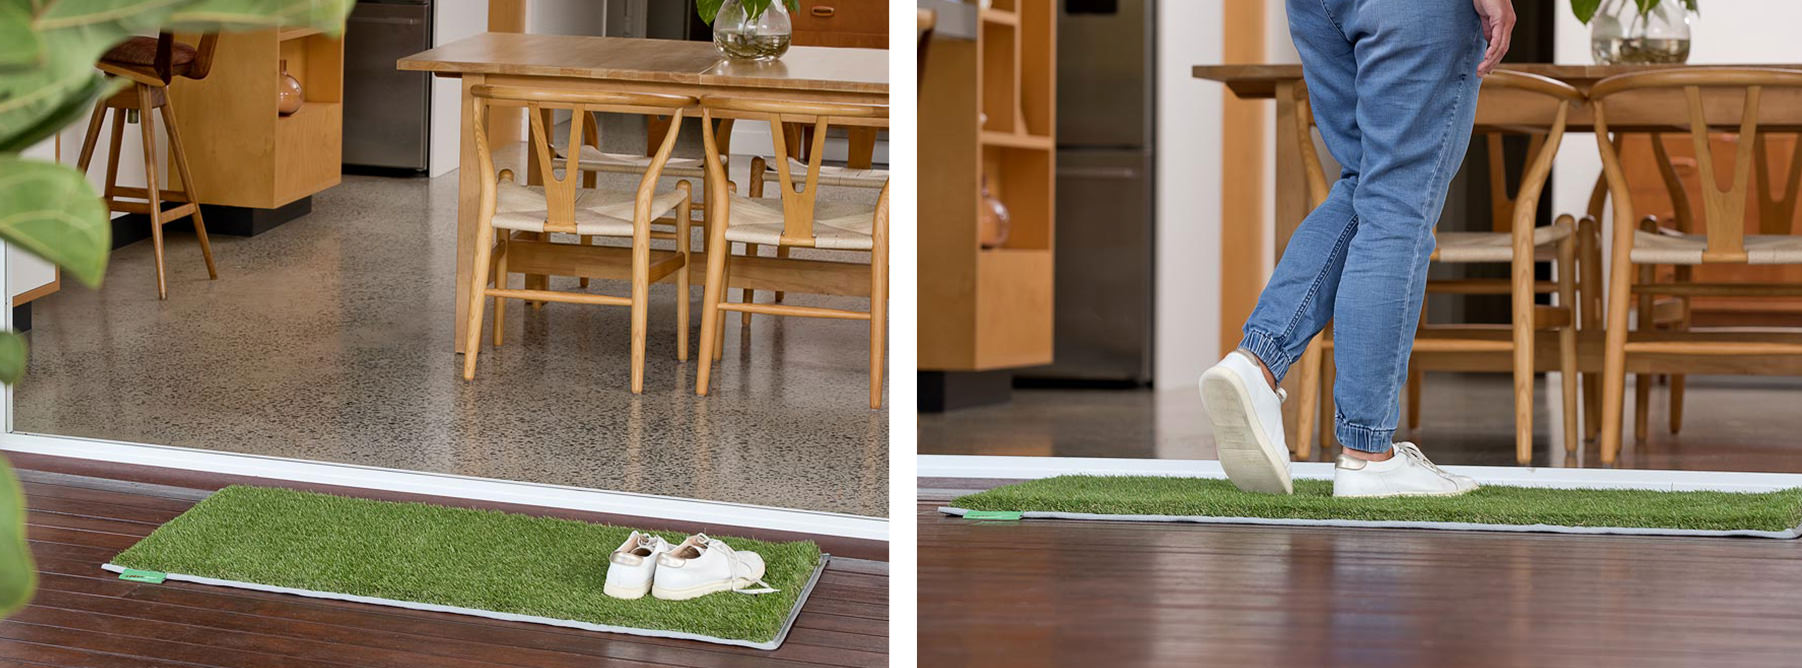 Split images. First image of synthetic grass door mat with a pair of white sneakers on top placed just outside of a home. Second image of woman using the synthetic grass door mat to wipe her feet before entering the home.